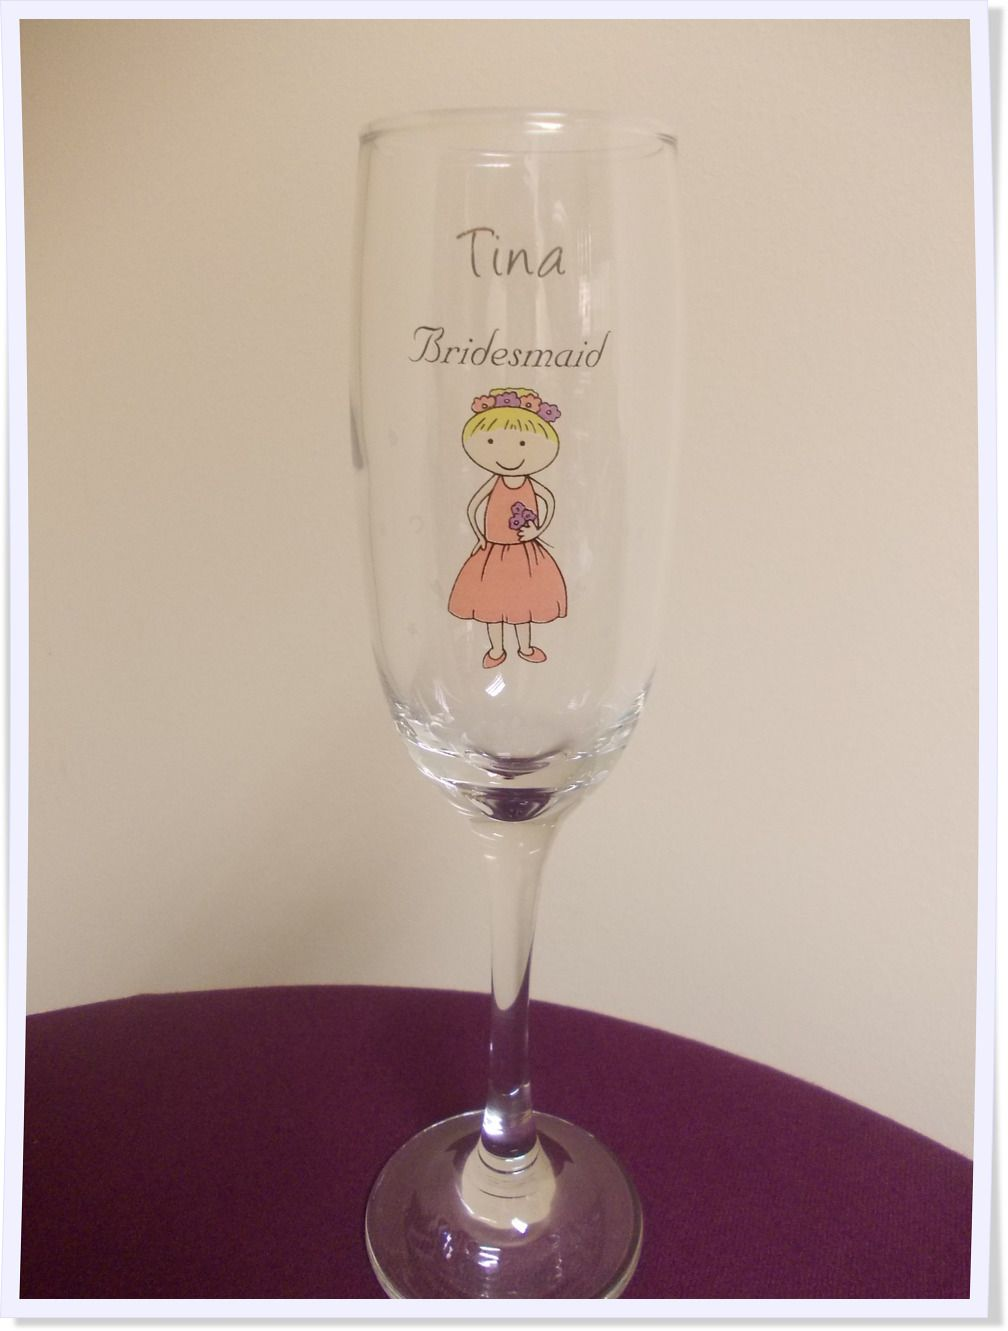 Pin by I Just Love It on Wedding Gifts | Pinterest